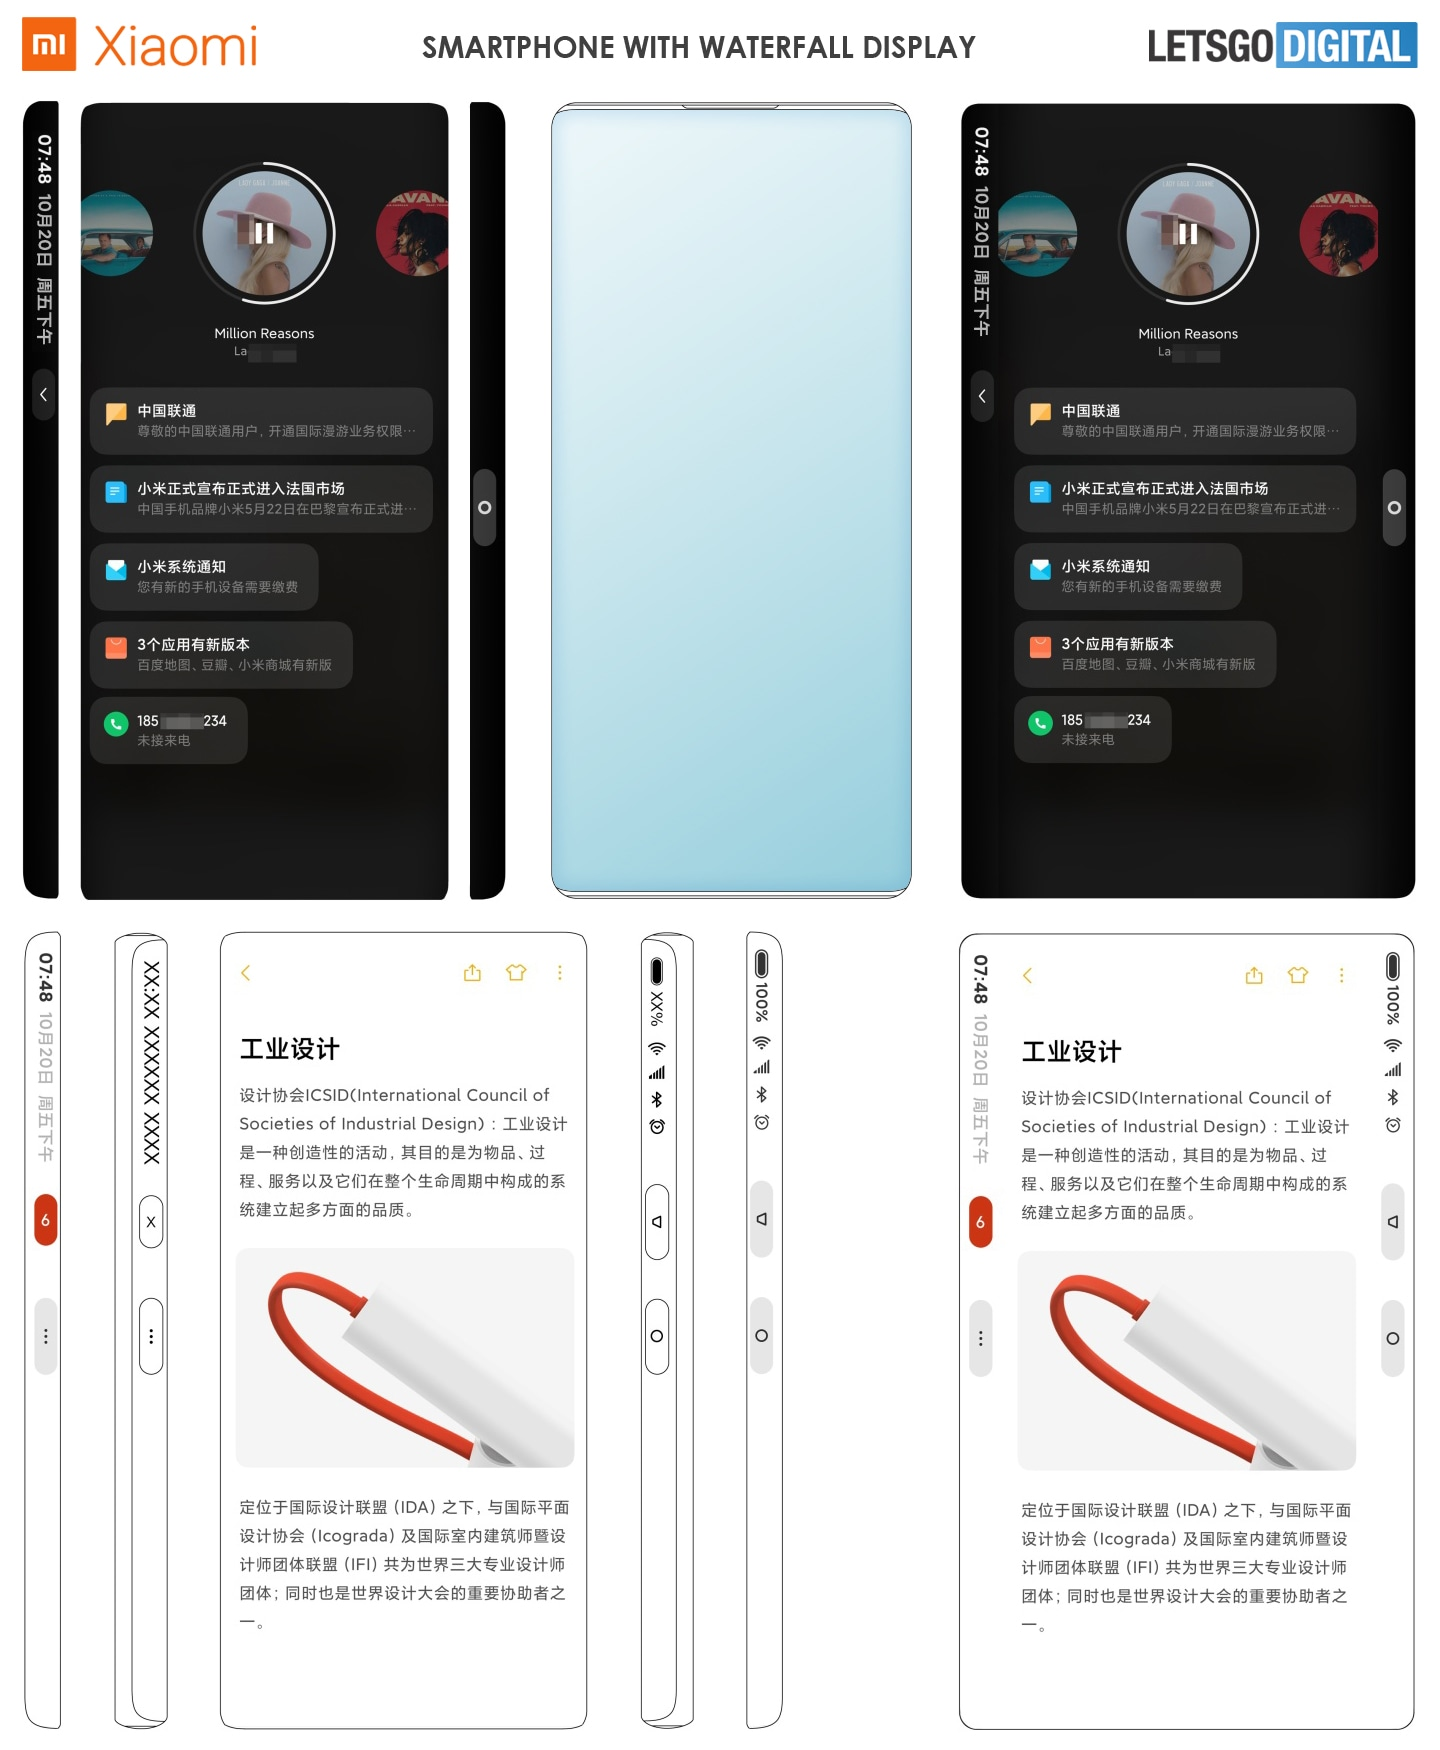 xiaomi design patent waterfall display letsgodigital Xiaomi